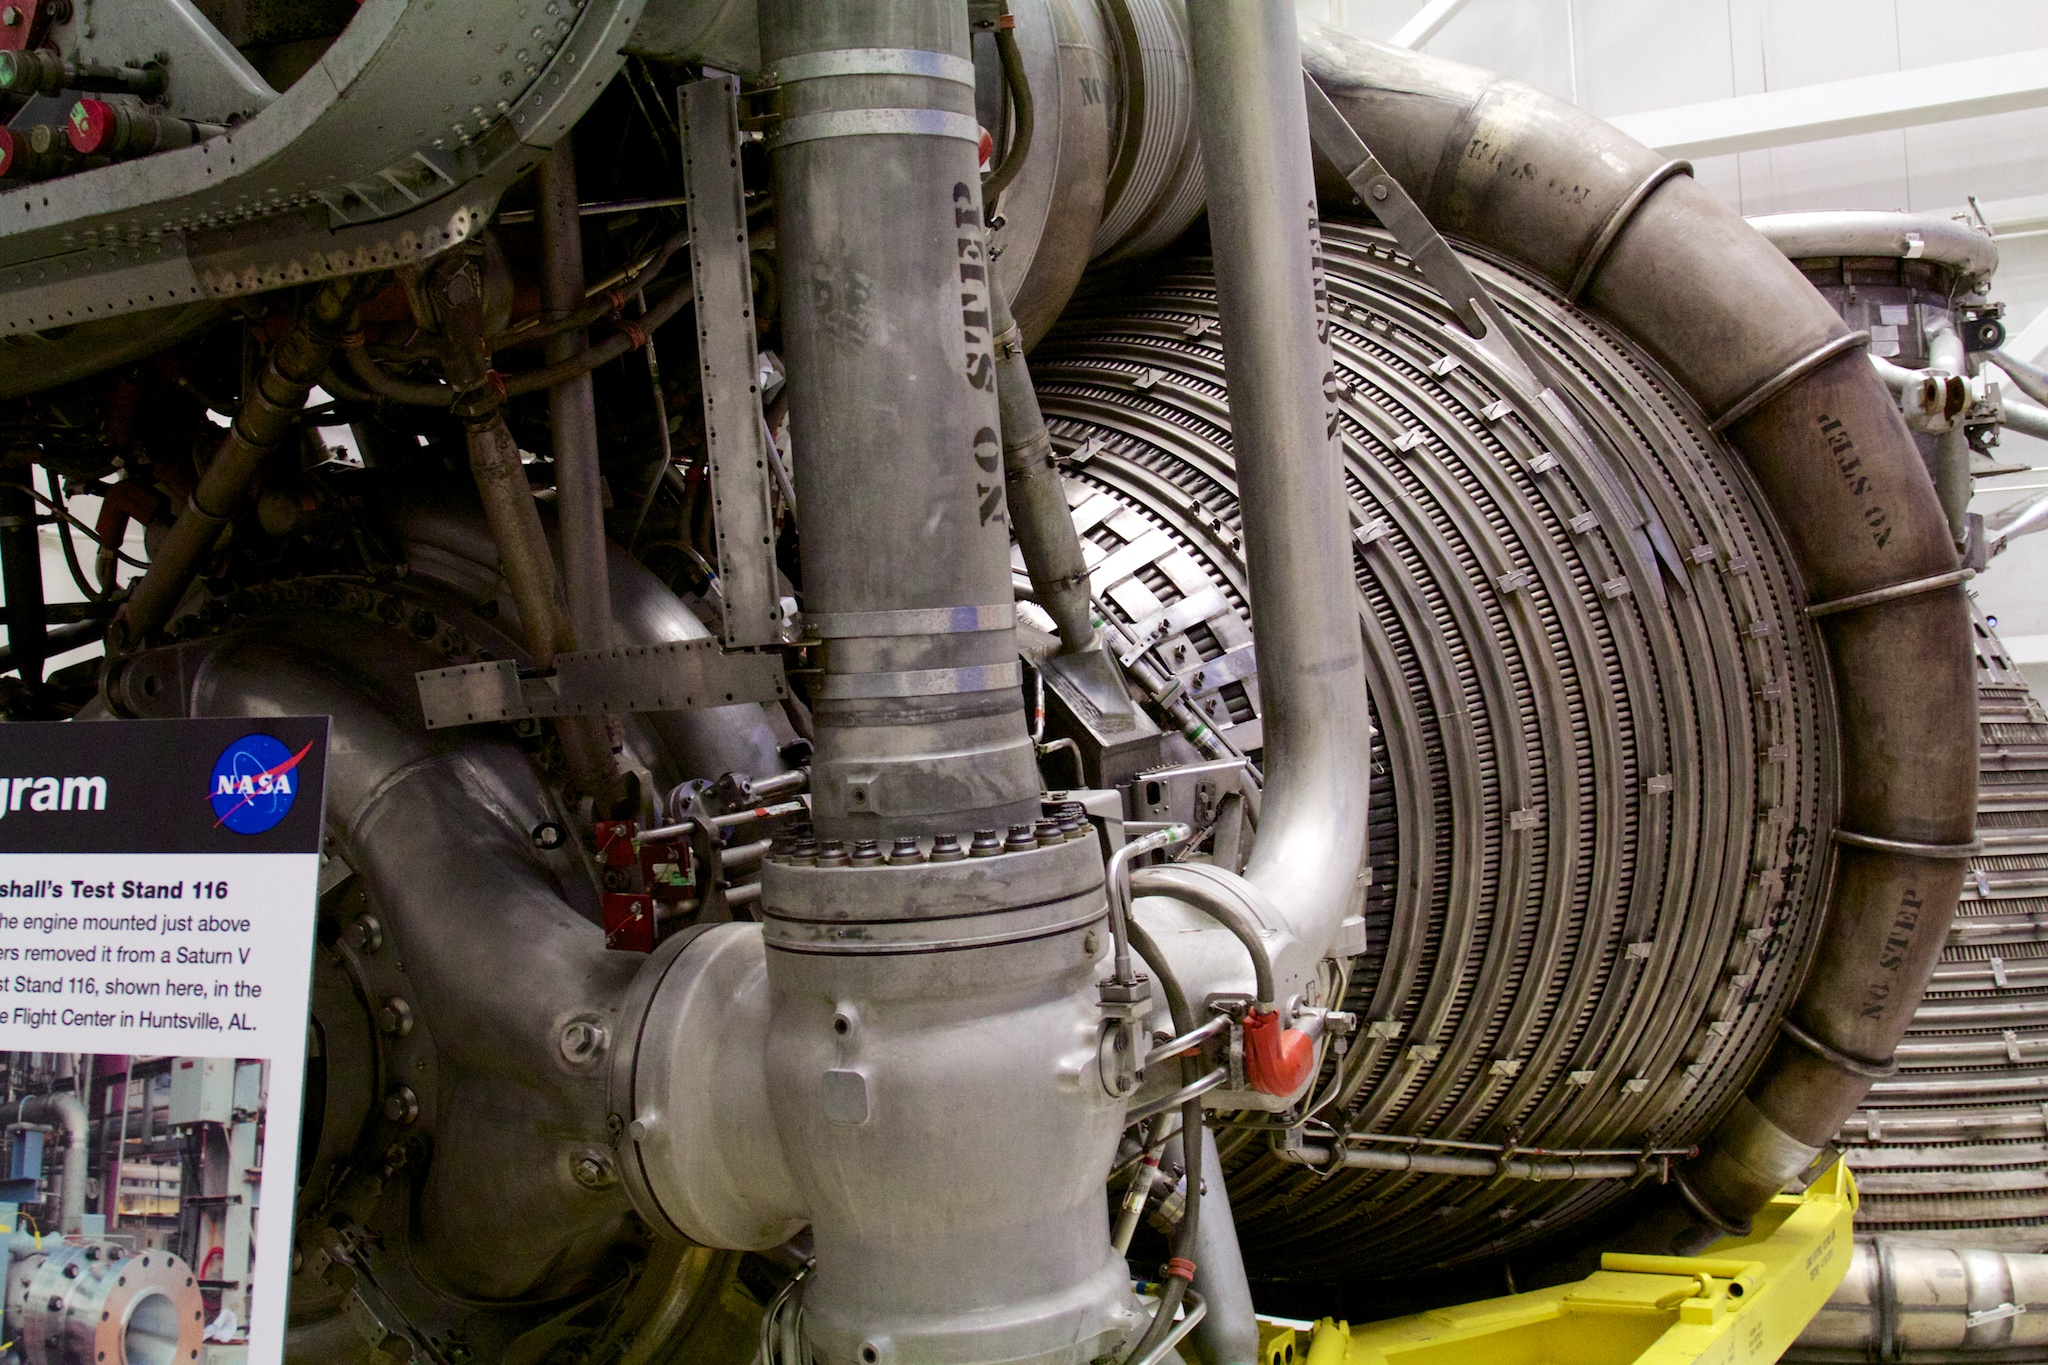 Detail on the upper thrust chamber of an F-1 engine. Note tightly packed series of tubes, bound together with barrel-like hoops.